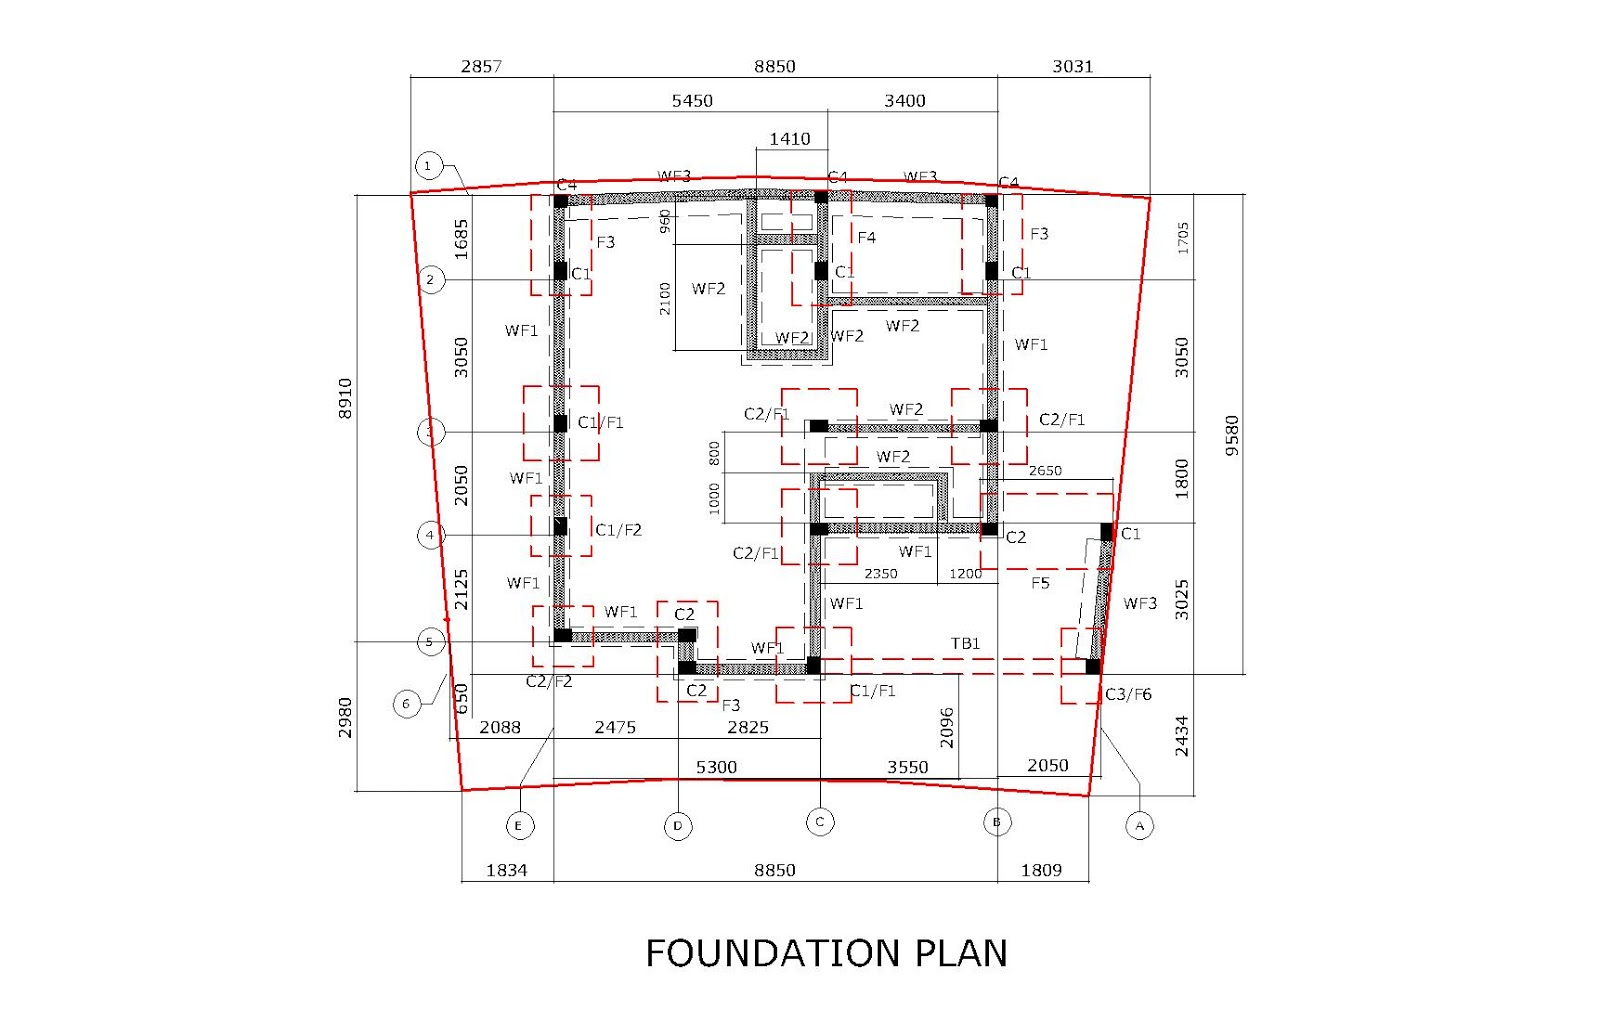 Home foundation plan 28 images foundation plan william for House foundation plan